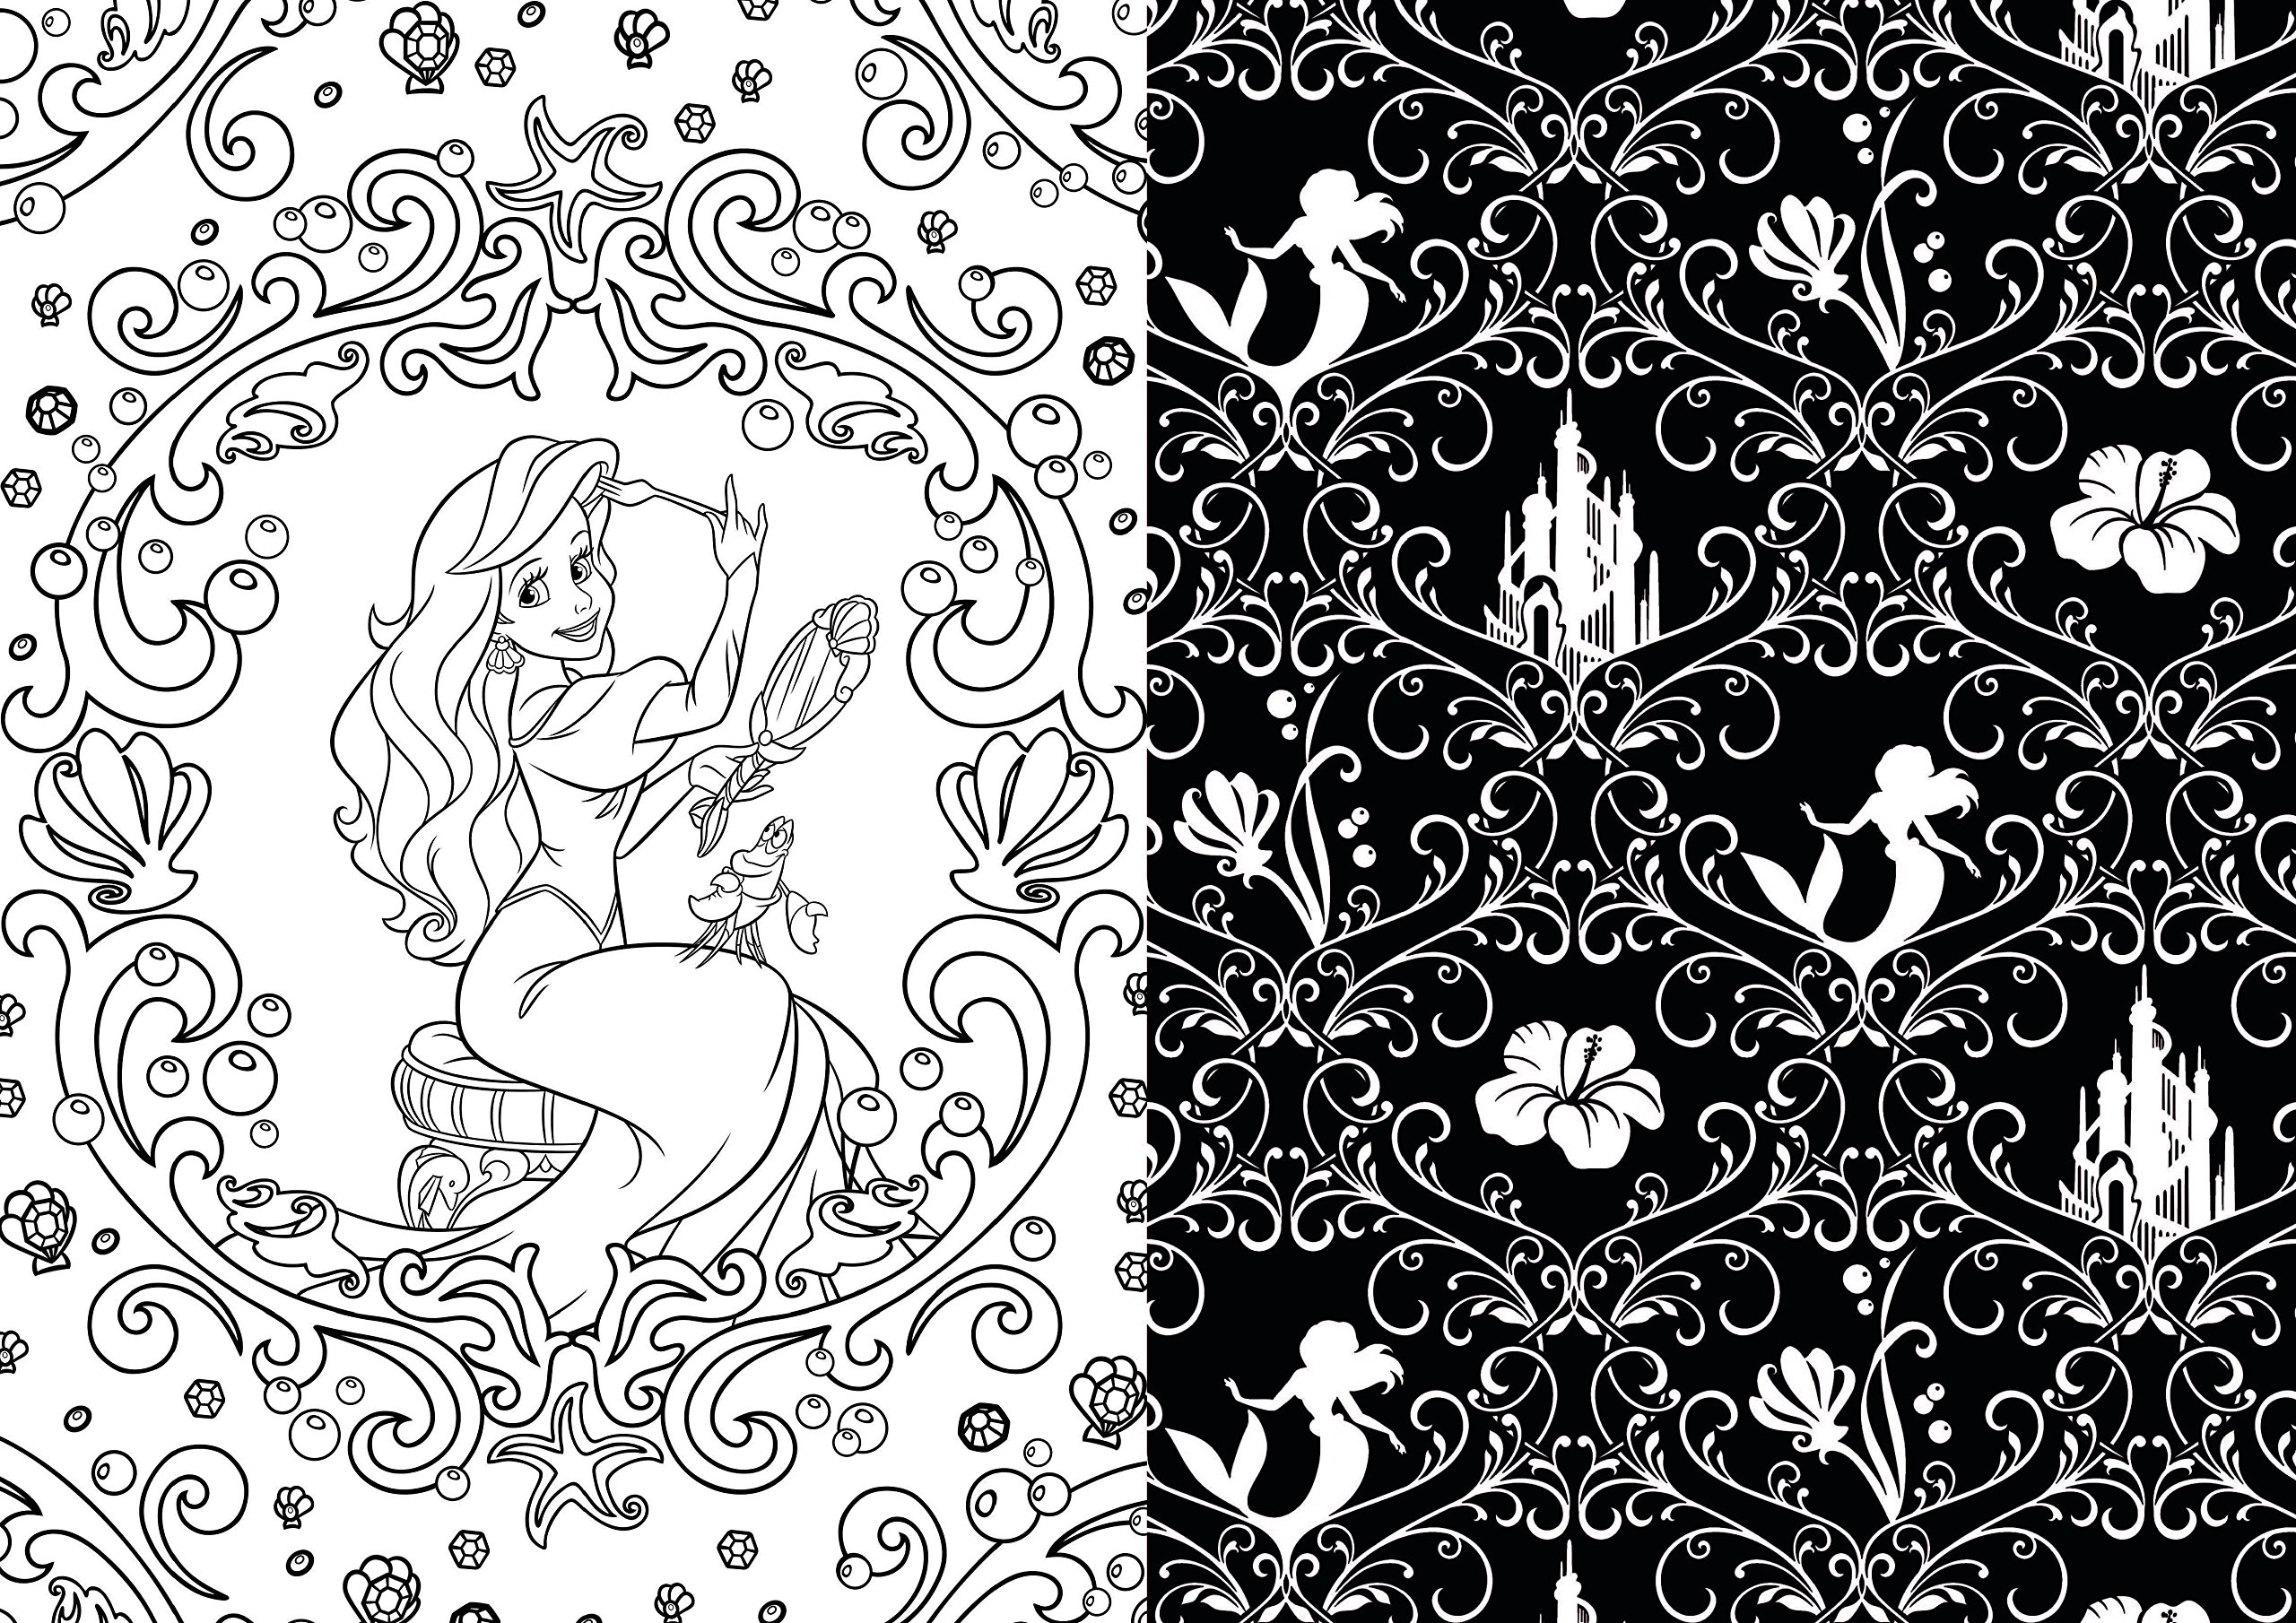 Disney coloring pages adults - Art Of Coloring Disney Princess 100 Images To Inspire Creativity And Relaxation Art Therapy Catherine Saunier Talec Anne Le Meur 0725961057404